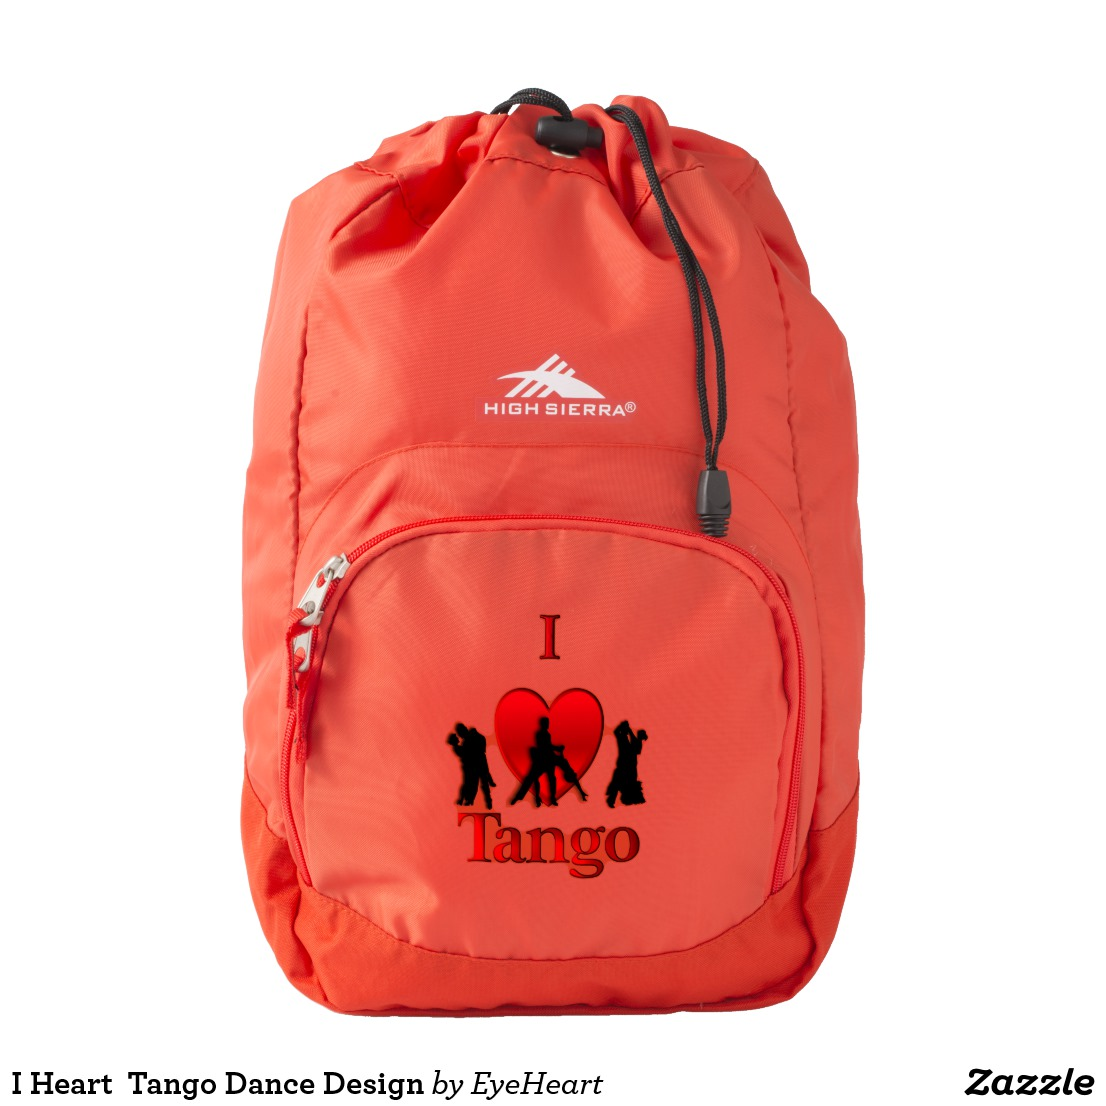 I Heart Tango Dance Design Backpack